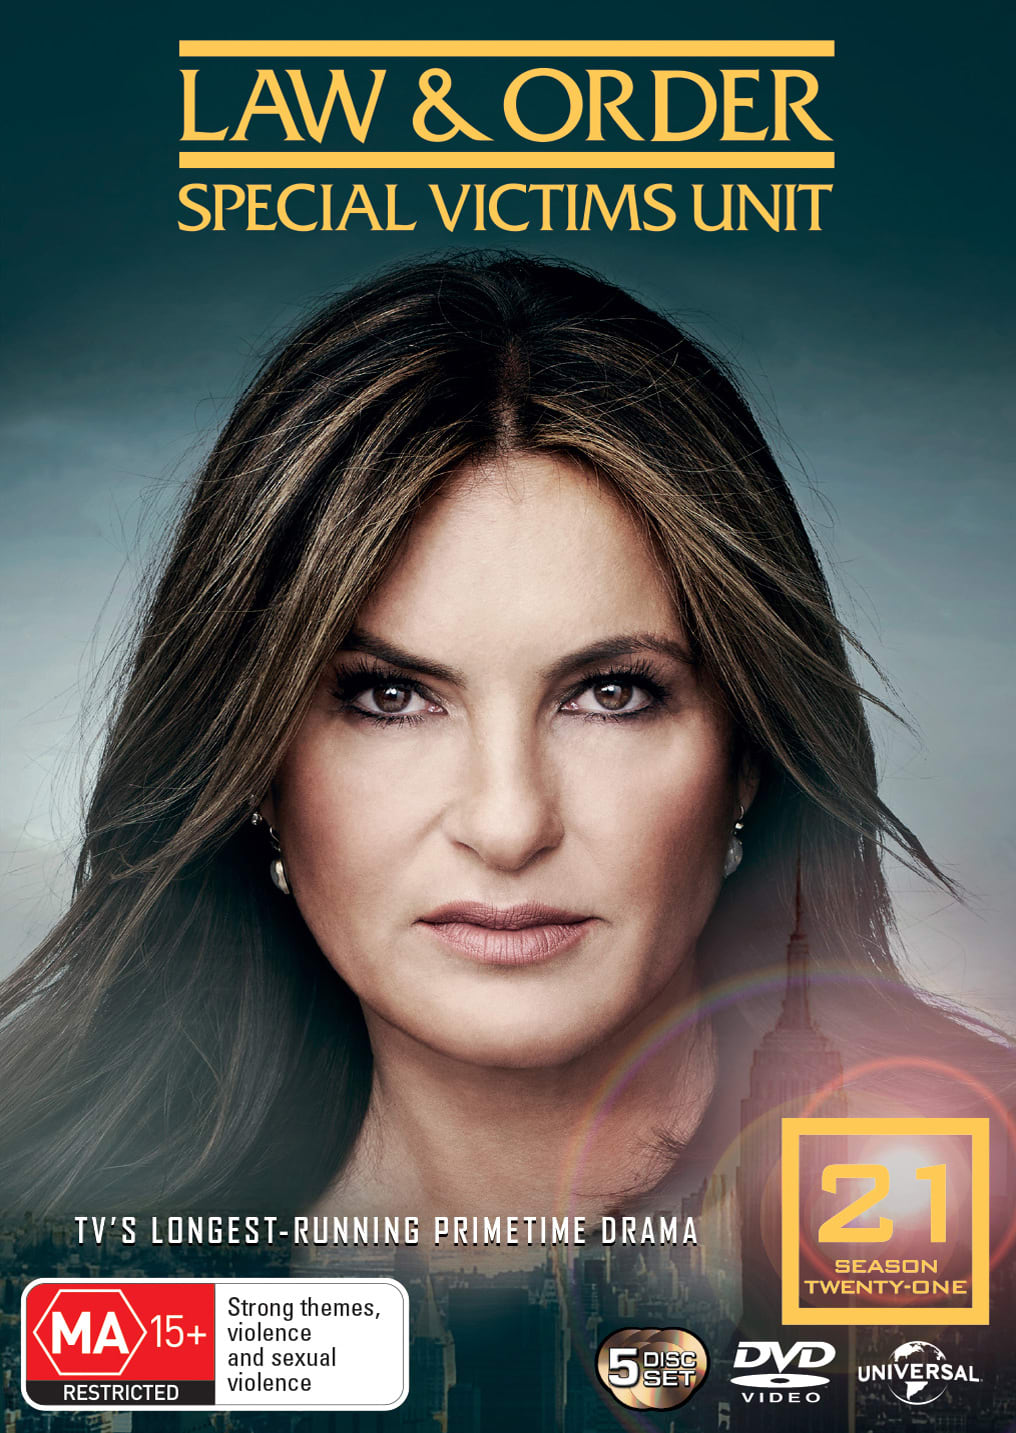 Law and Order - Special Victims Unit: Season 21 (Box Set) [DVD]